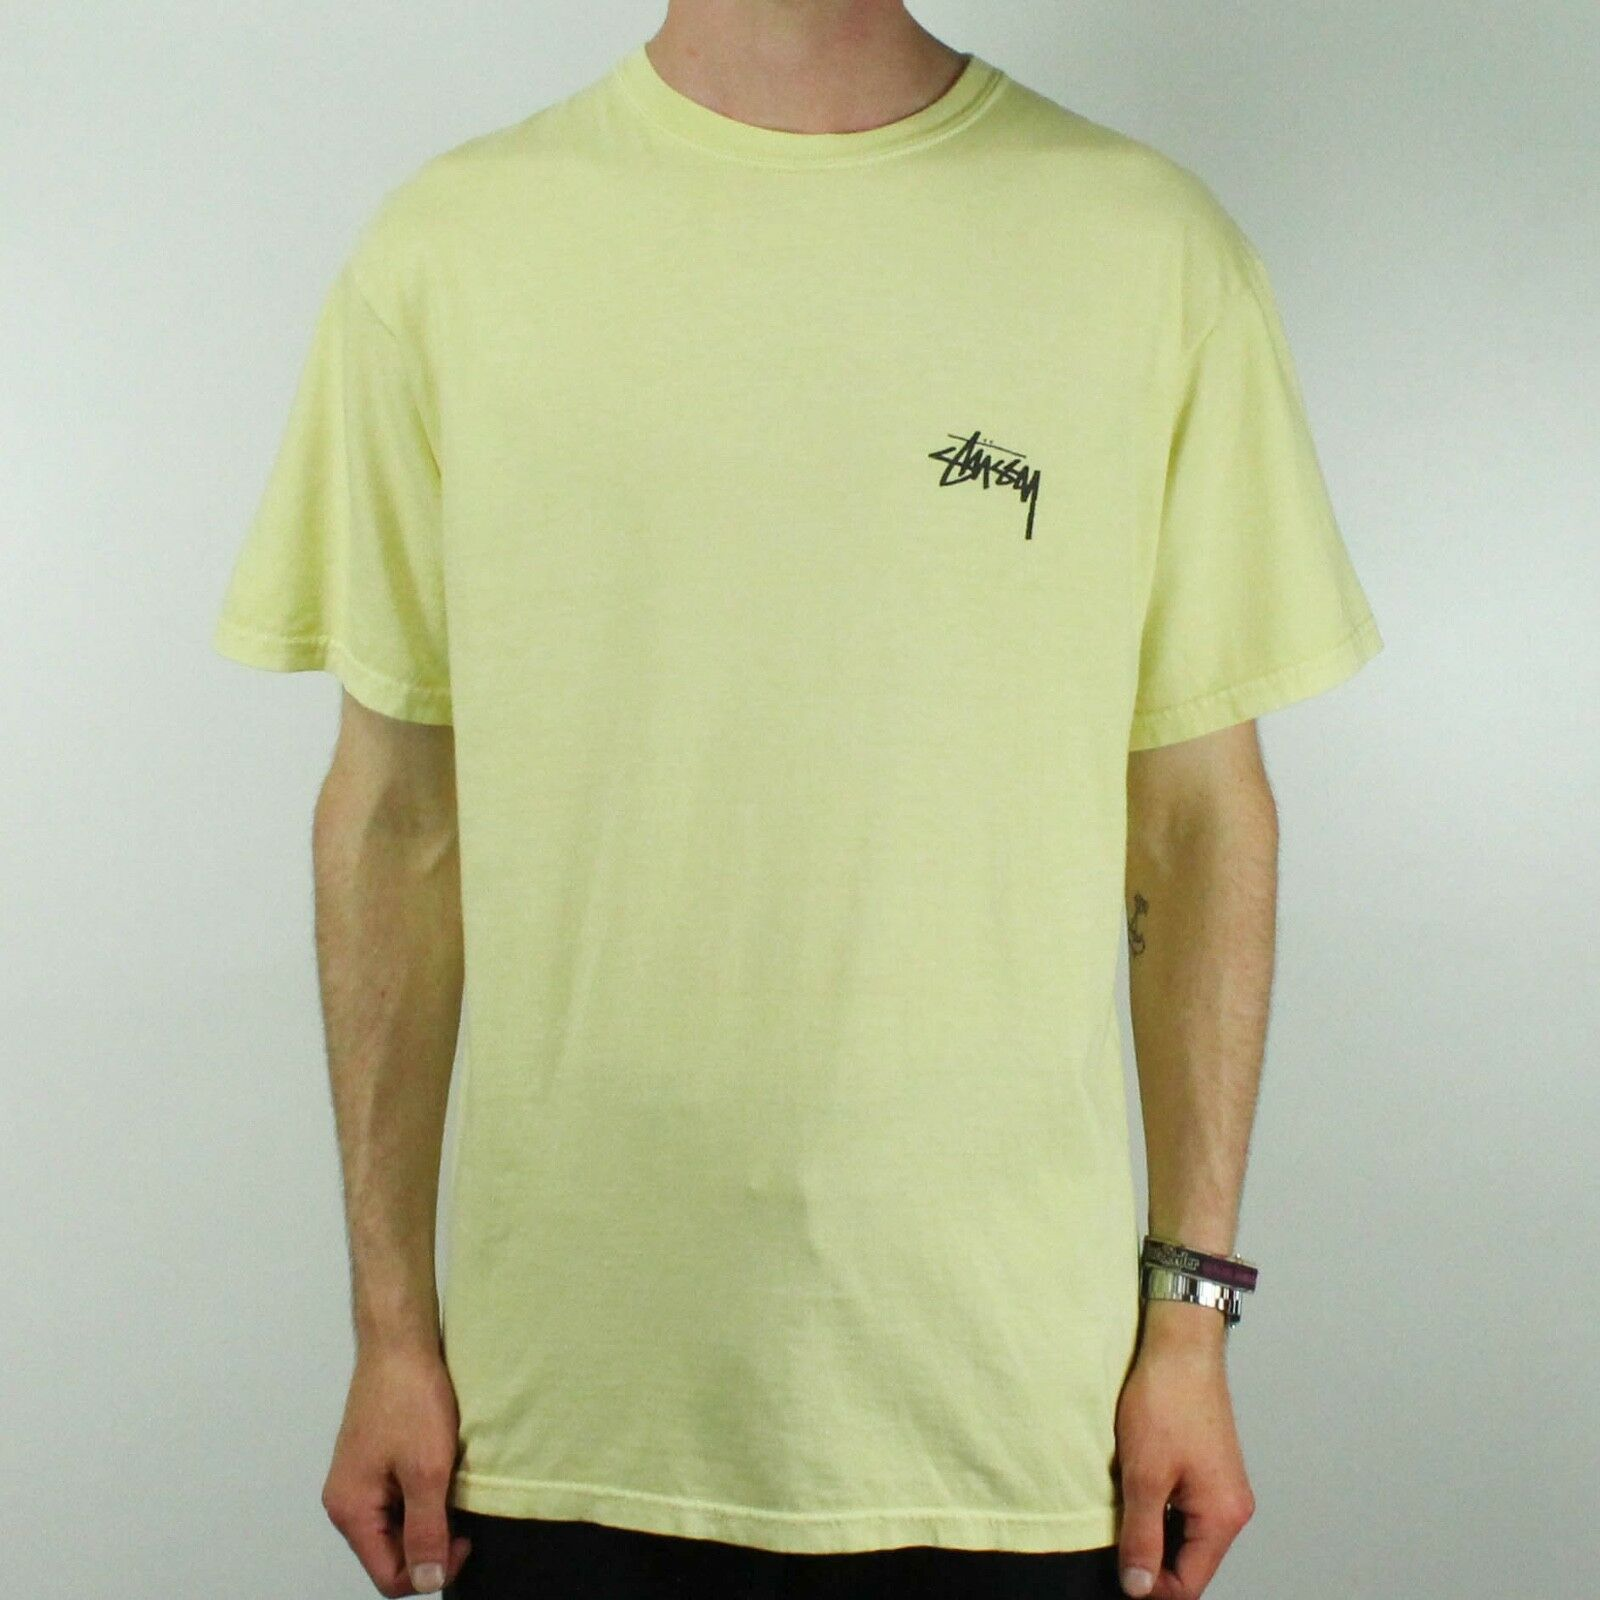 2ce4652b Details about Stussy Tribeman Pig. Dyed Graphic Basic T-Shirt Tee in Yellow  in size M,L